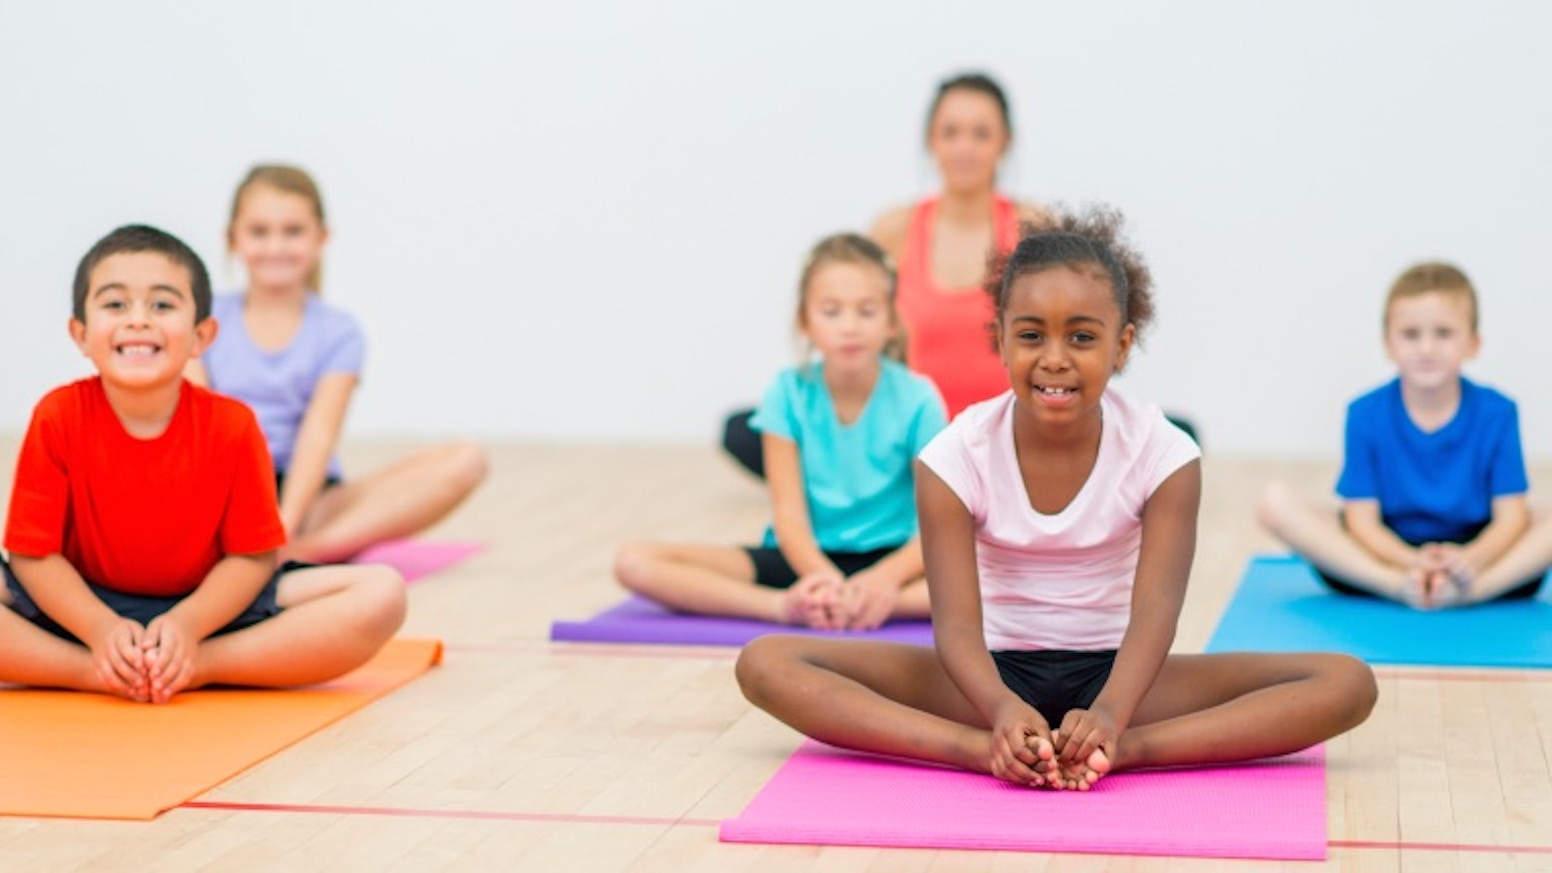 This program offers mindfulness lessons and yoga to children and teens: building compassion, focus, and emotional regulation